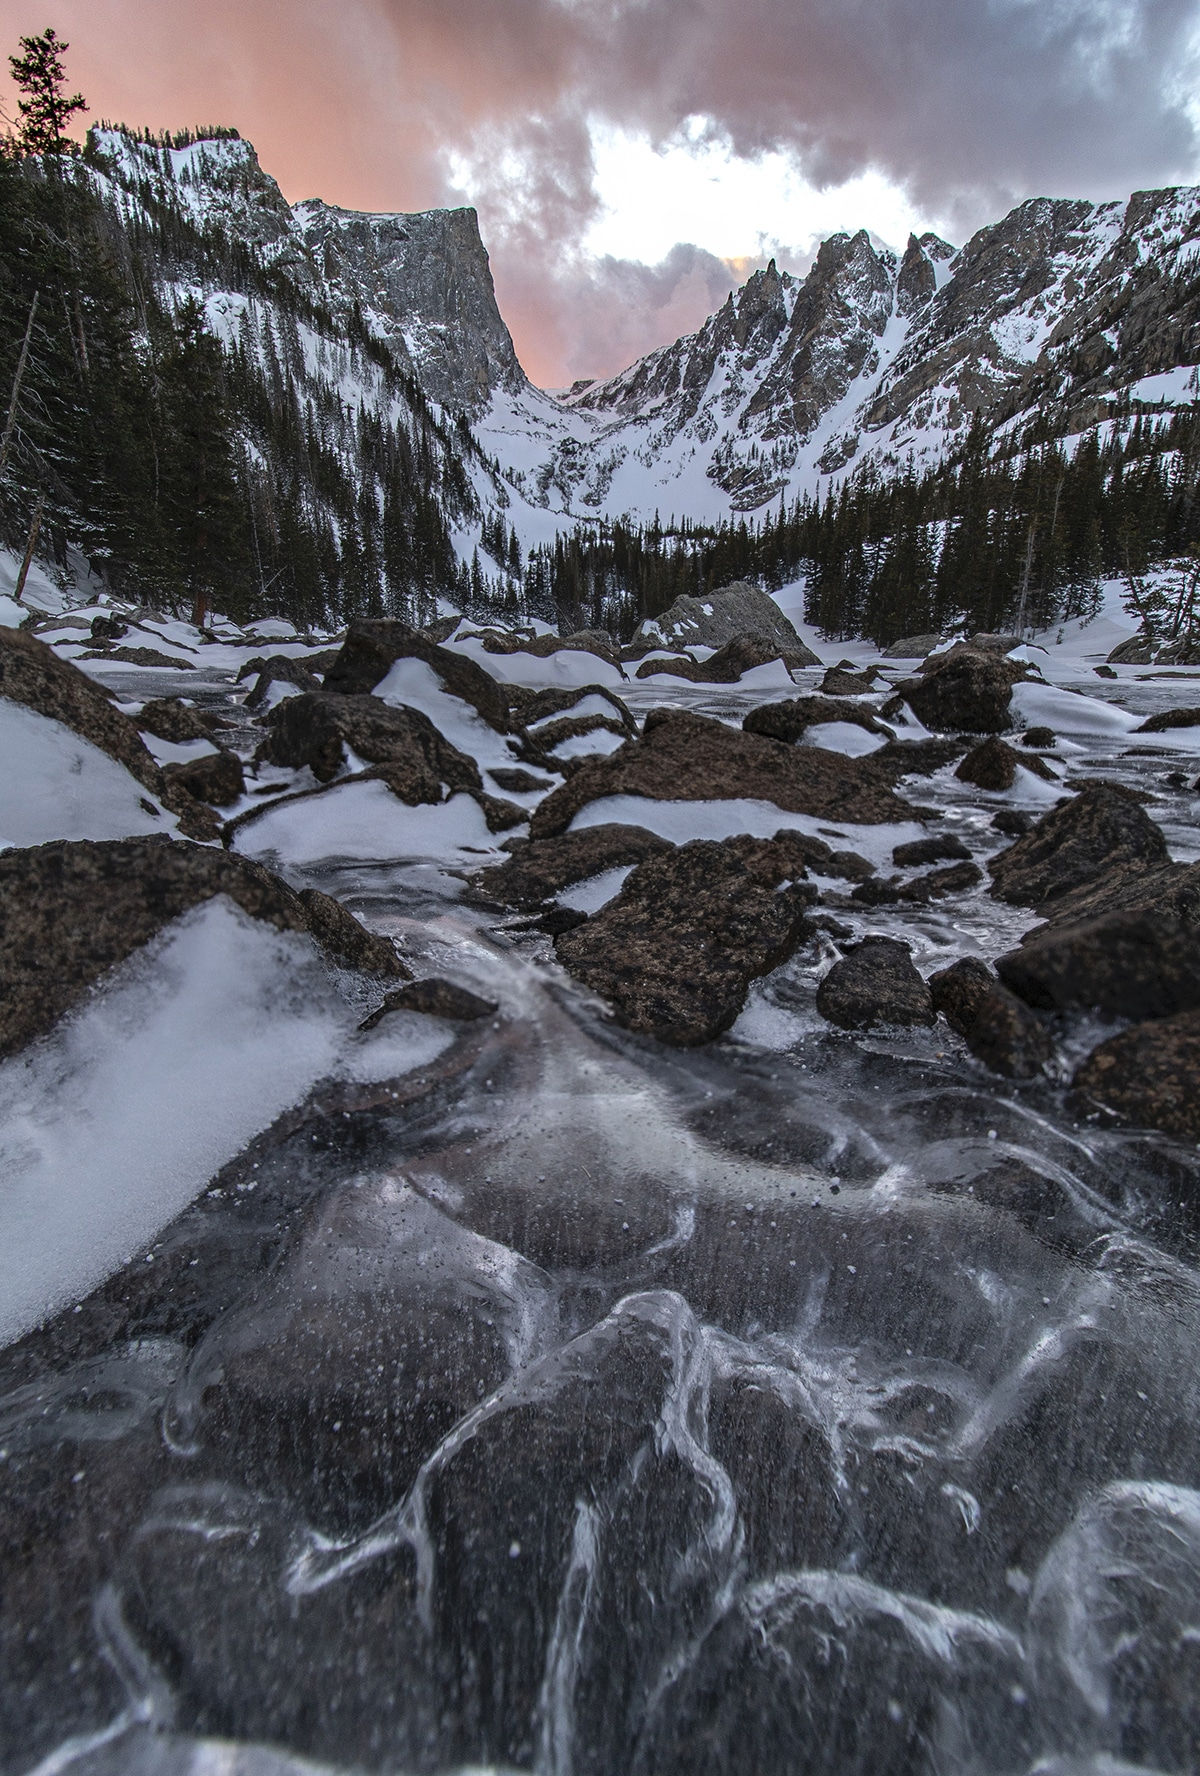 Icy Lake in Colorado